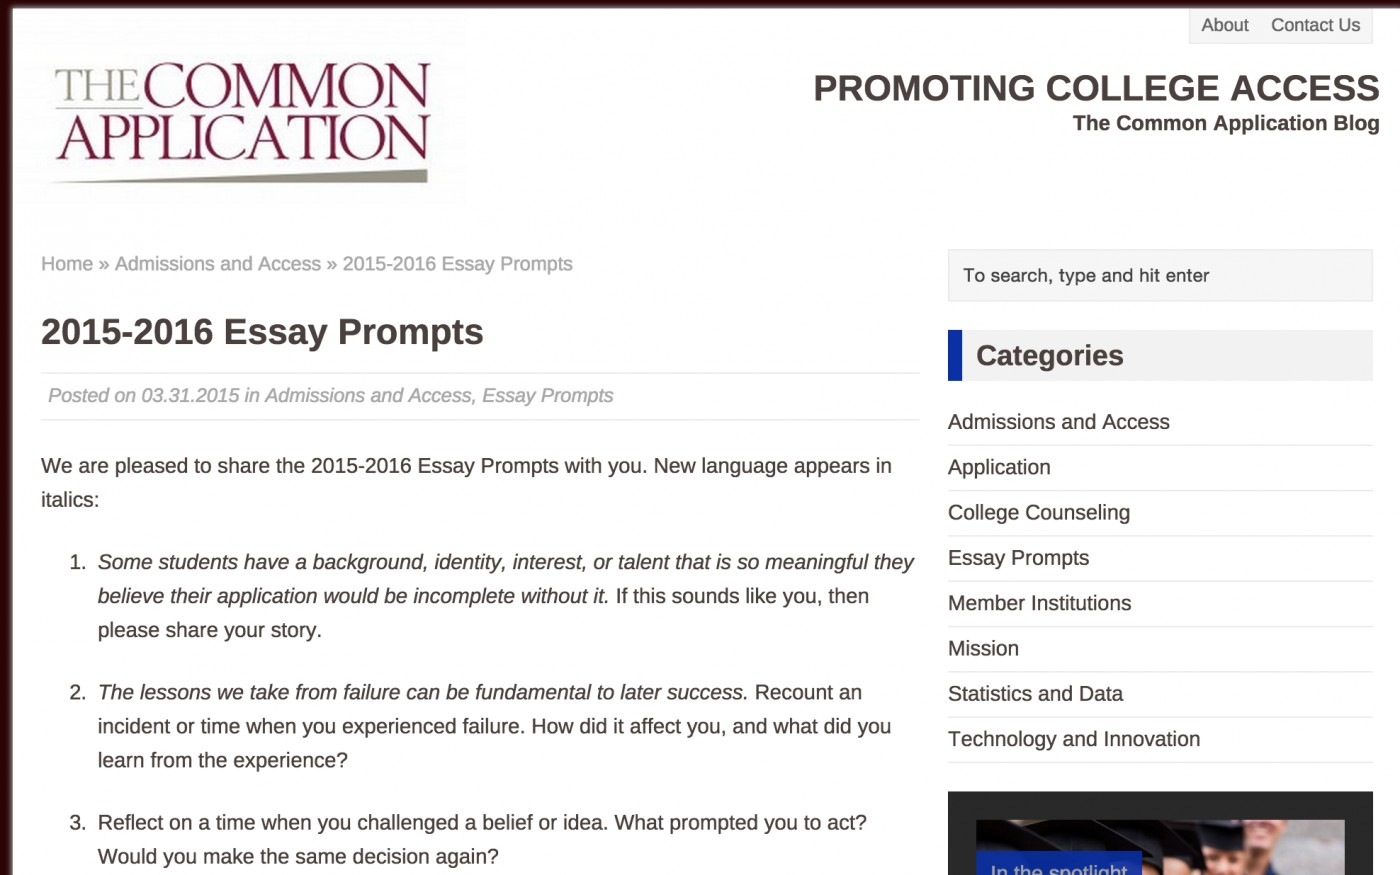 007 Length Of College Essay Common App Screen Shot At Pm Excellent 1400